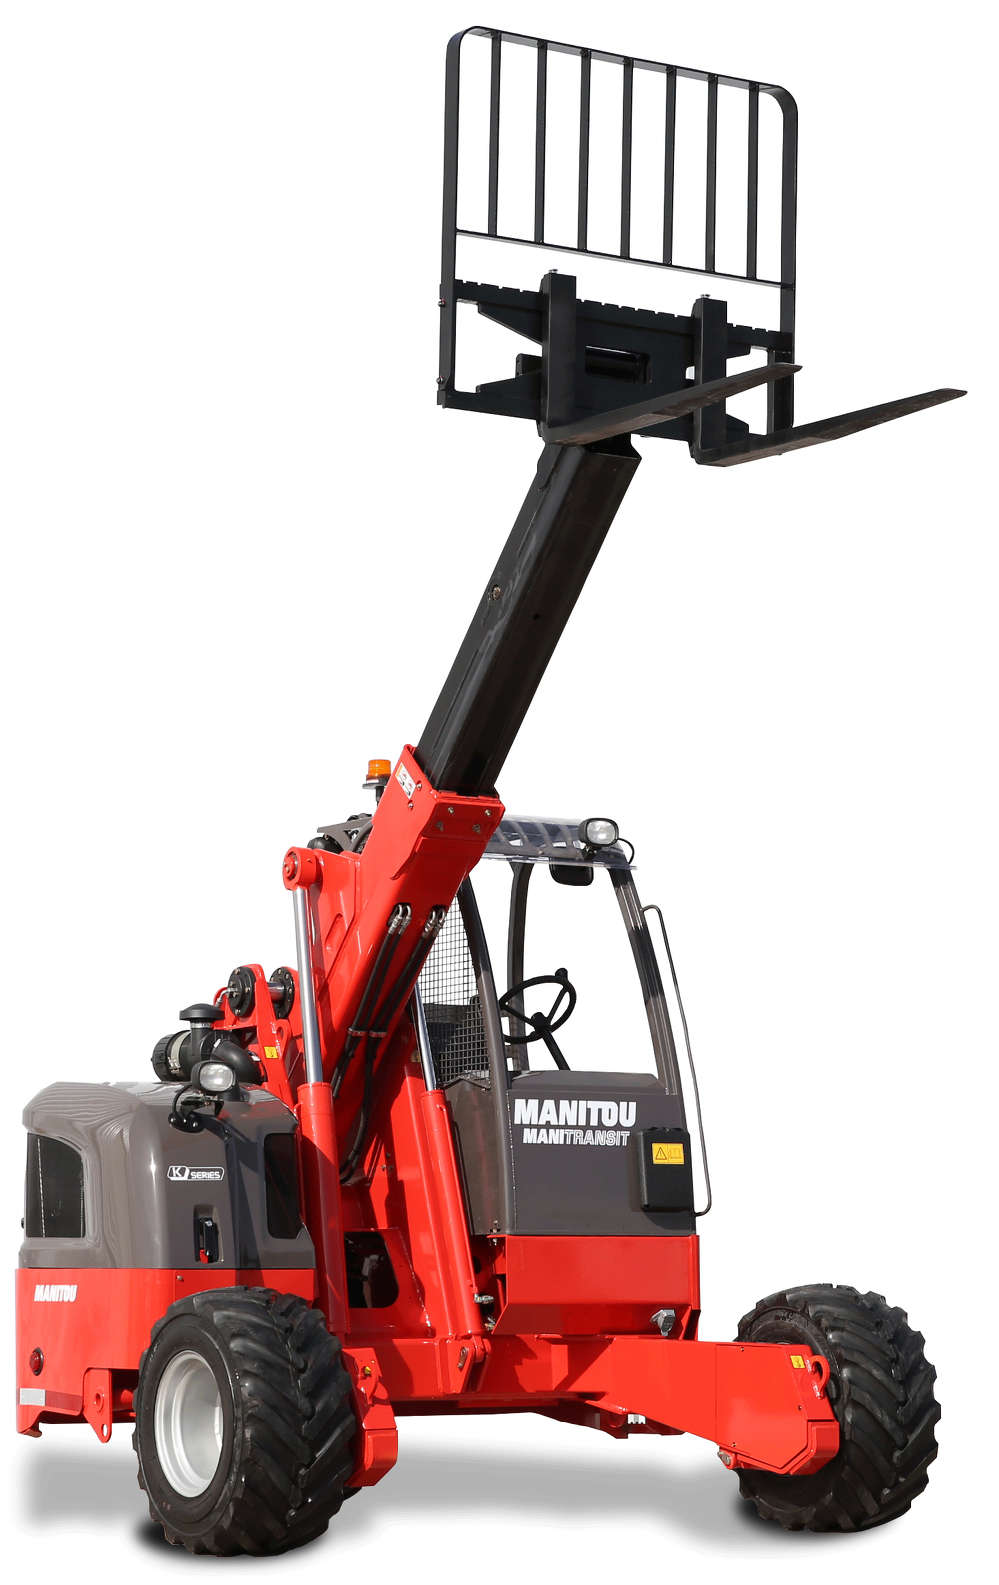 """While most truck mounted forklifts are designed with a mast, the Manitou TMT 55 is patented as a """"free lift"""" forklift, providing telescopic extension up to 4' 10"""" (1.47 m)."""